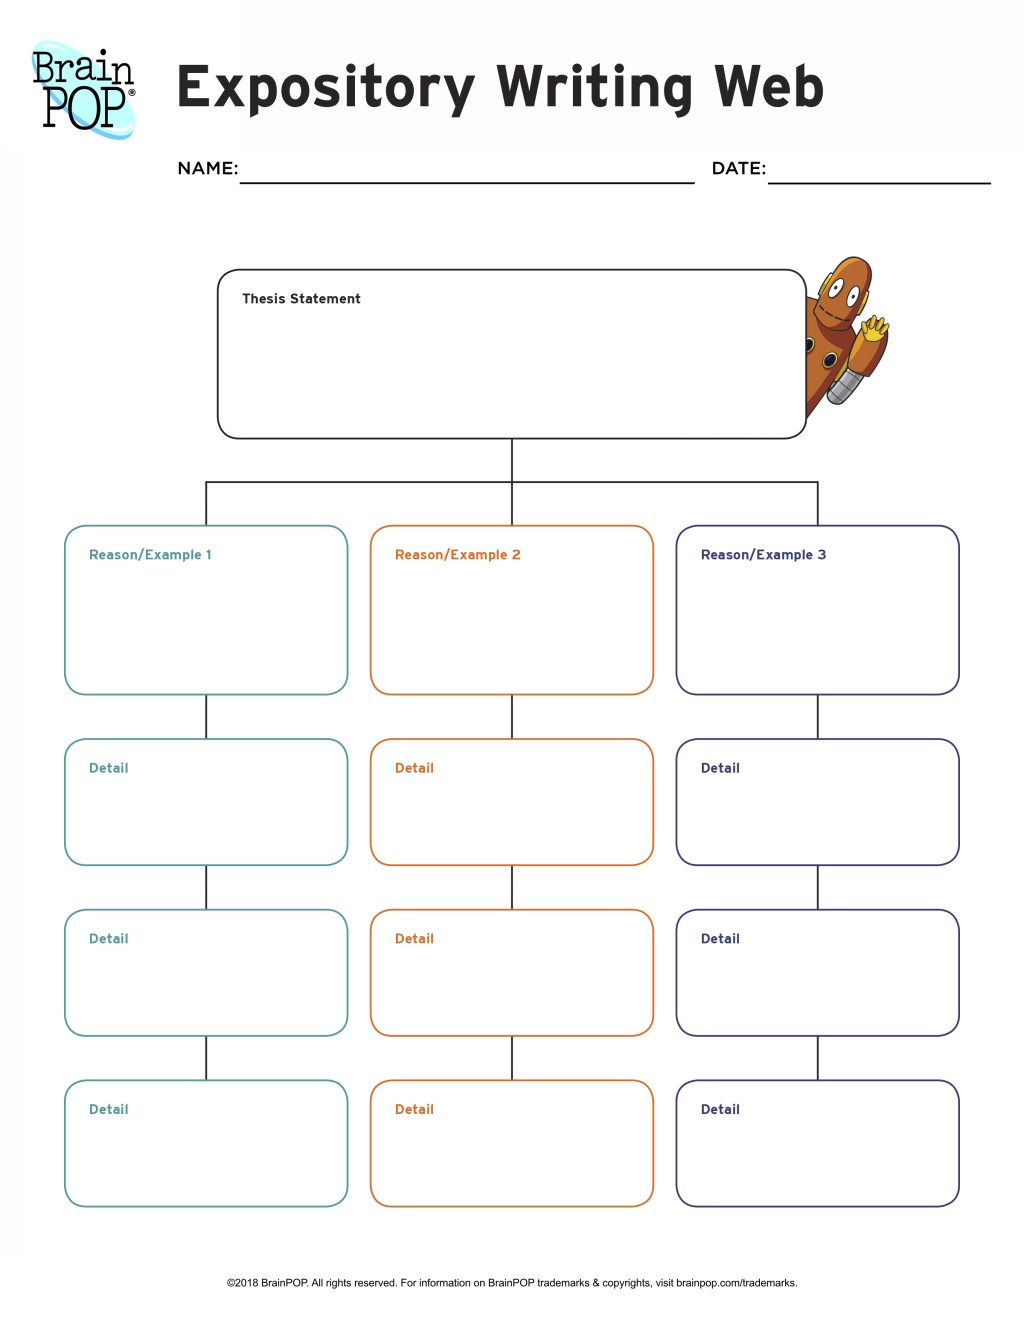 012 Informative Essay Graphic Organizer Example Expository Web Fascinating Free Informational Pdf 6th Grade Large